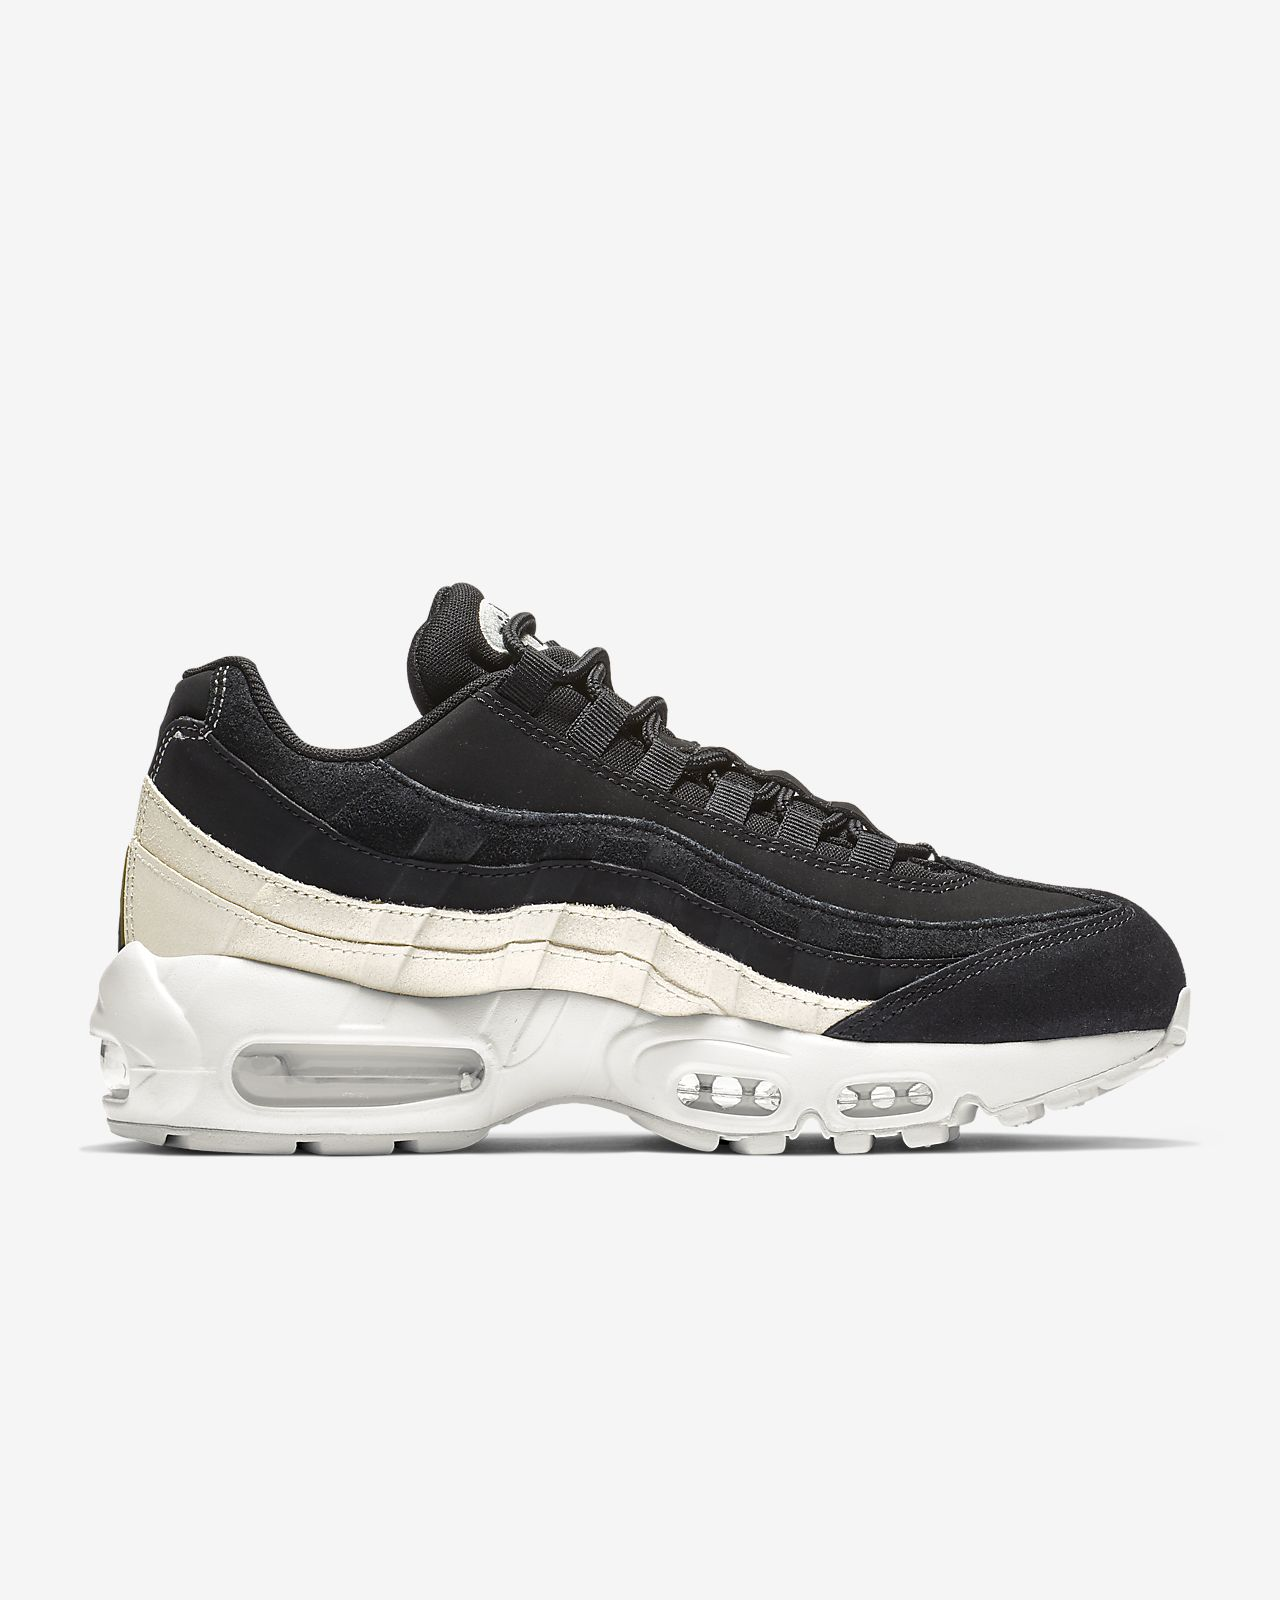 f44536ff86a Nike Air Max 95 Premium Women s Shoe. Nike.com GB